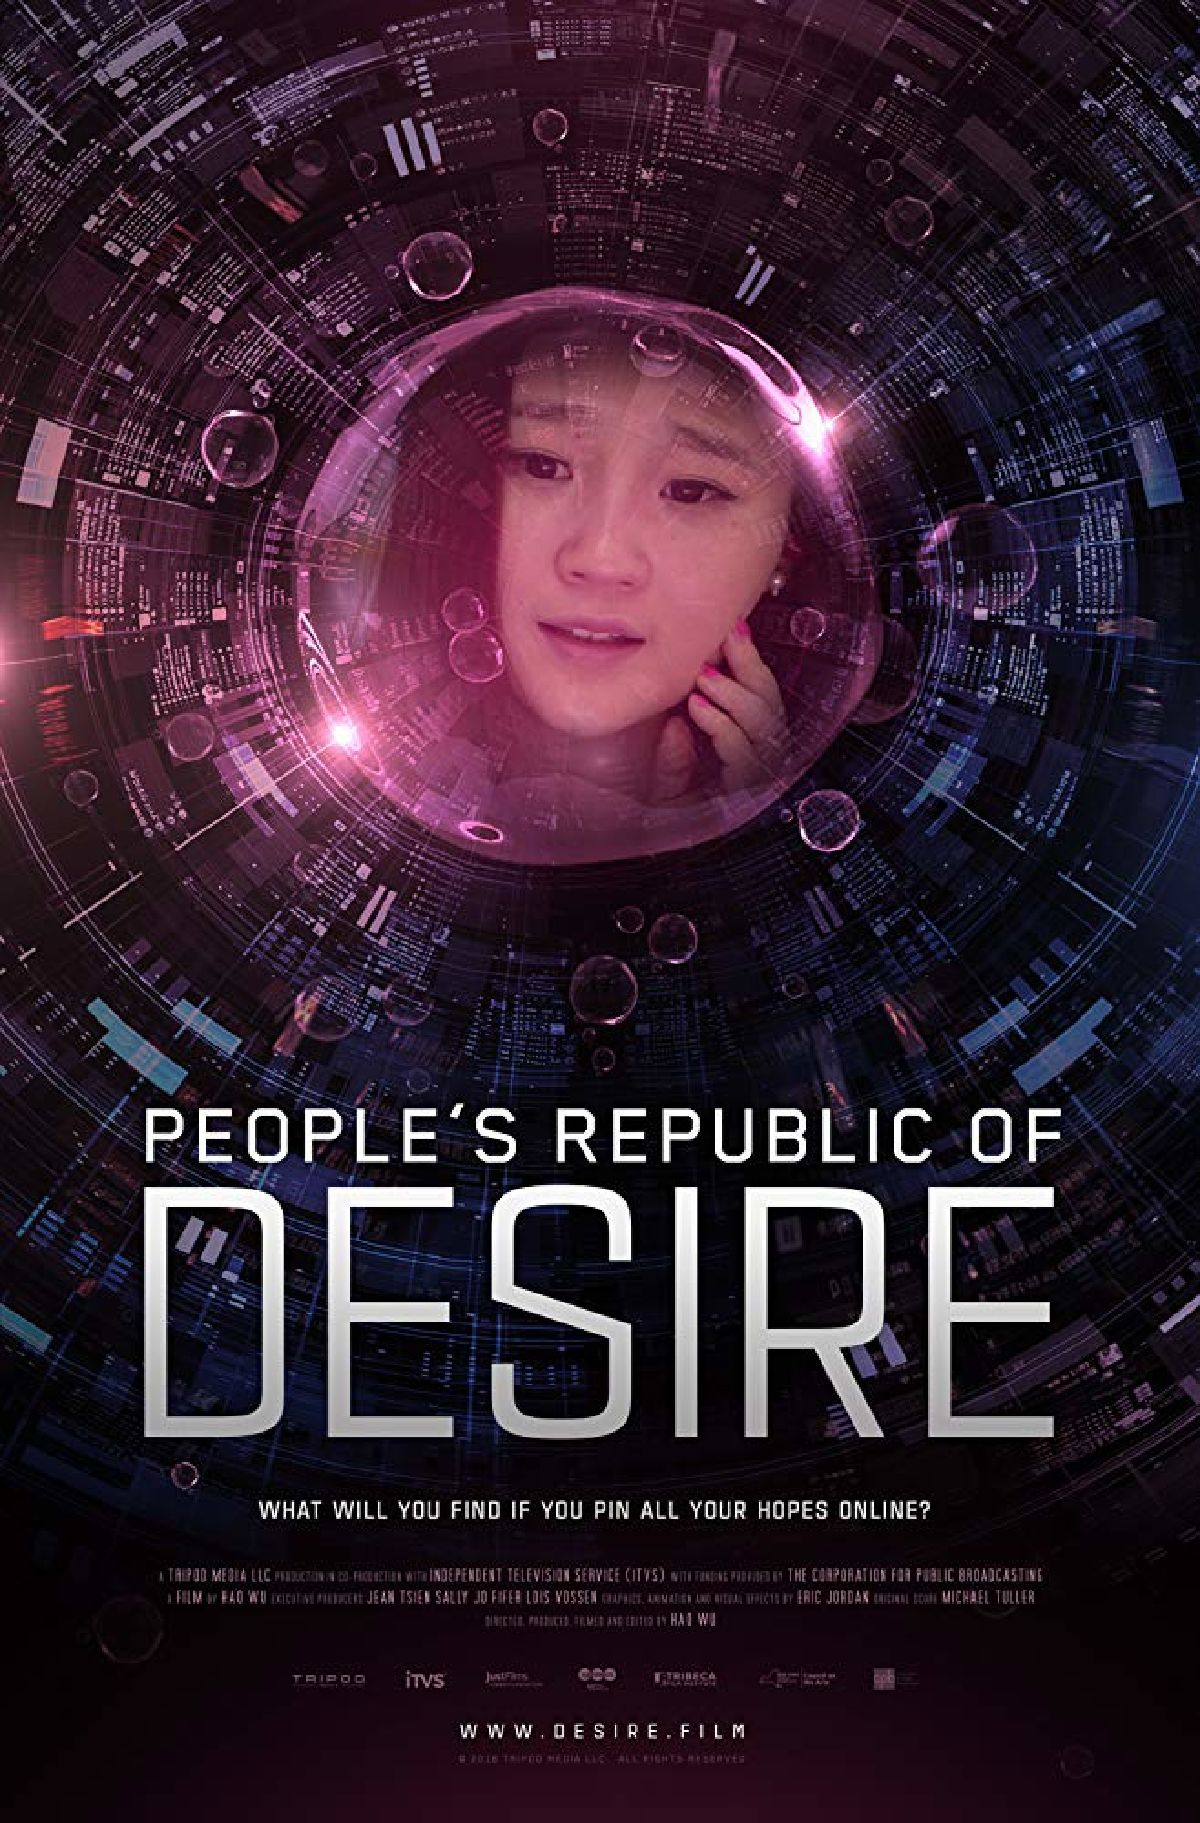 'People's Republic Of Desire' movie poster